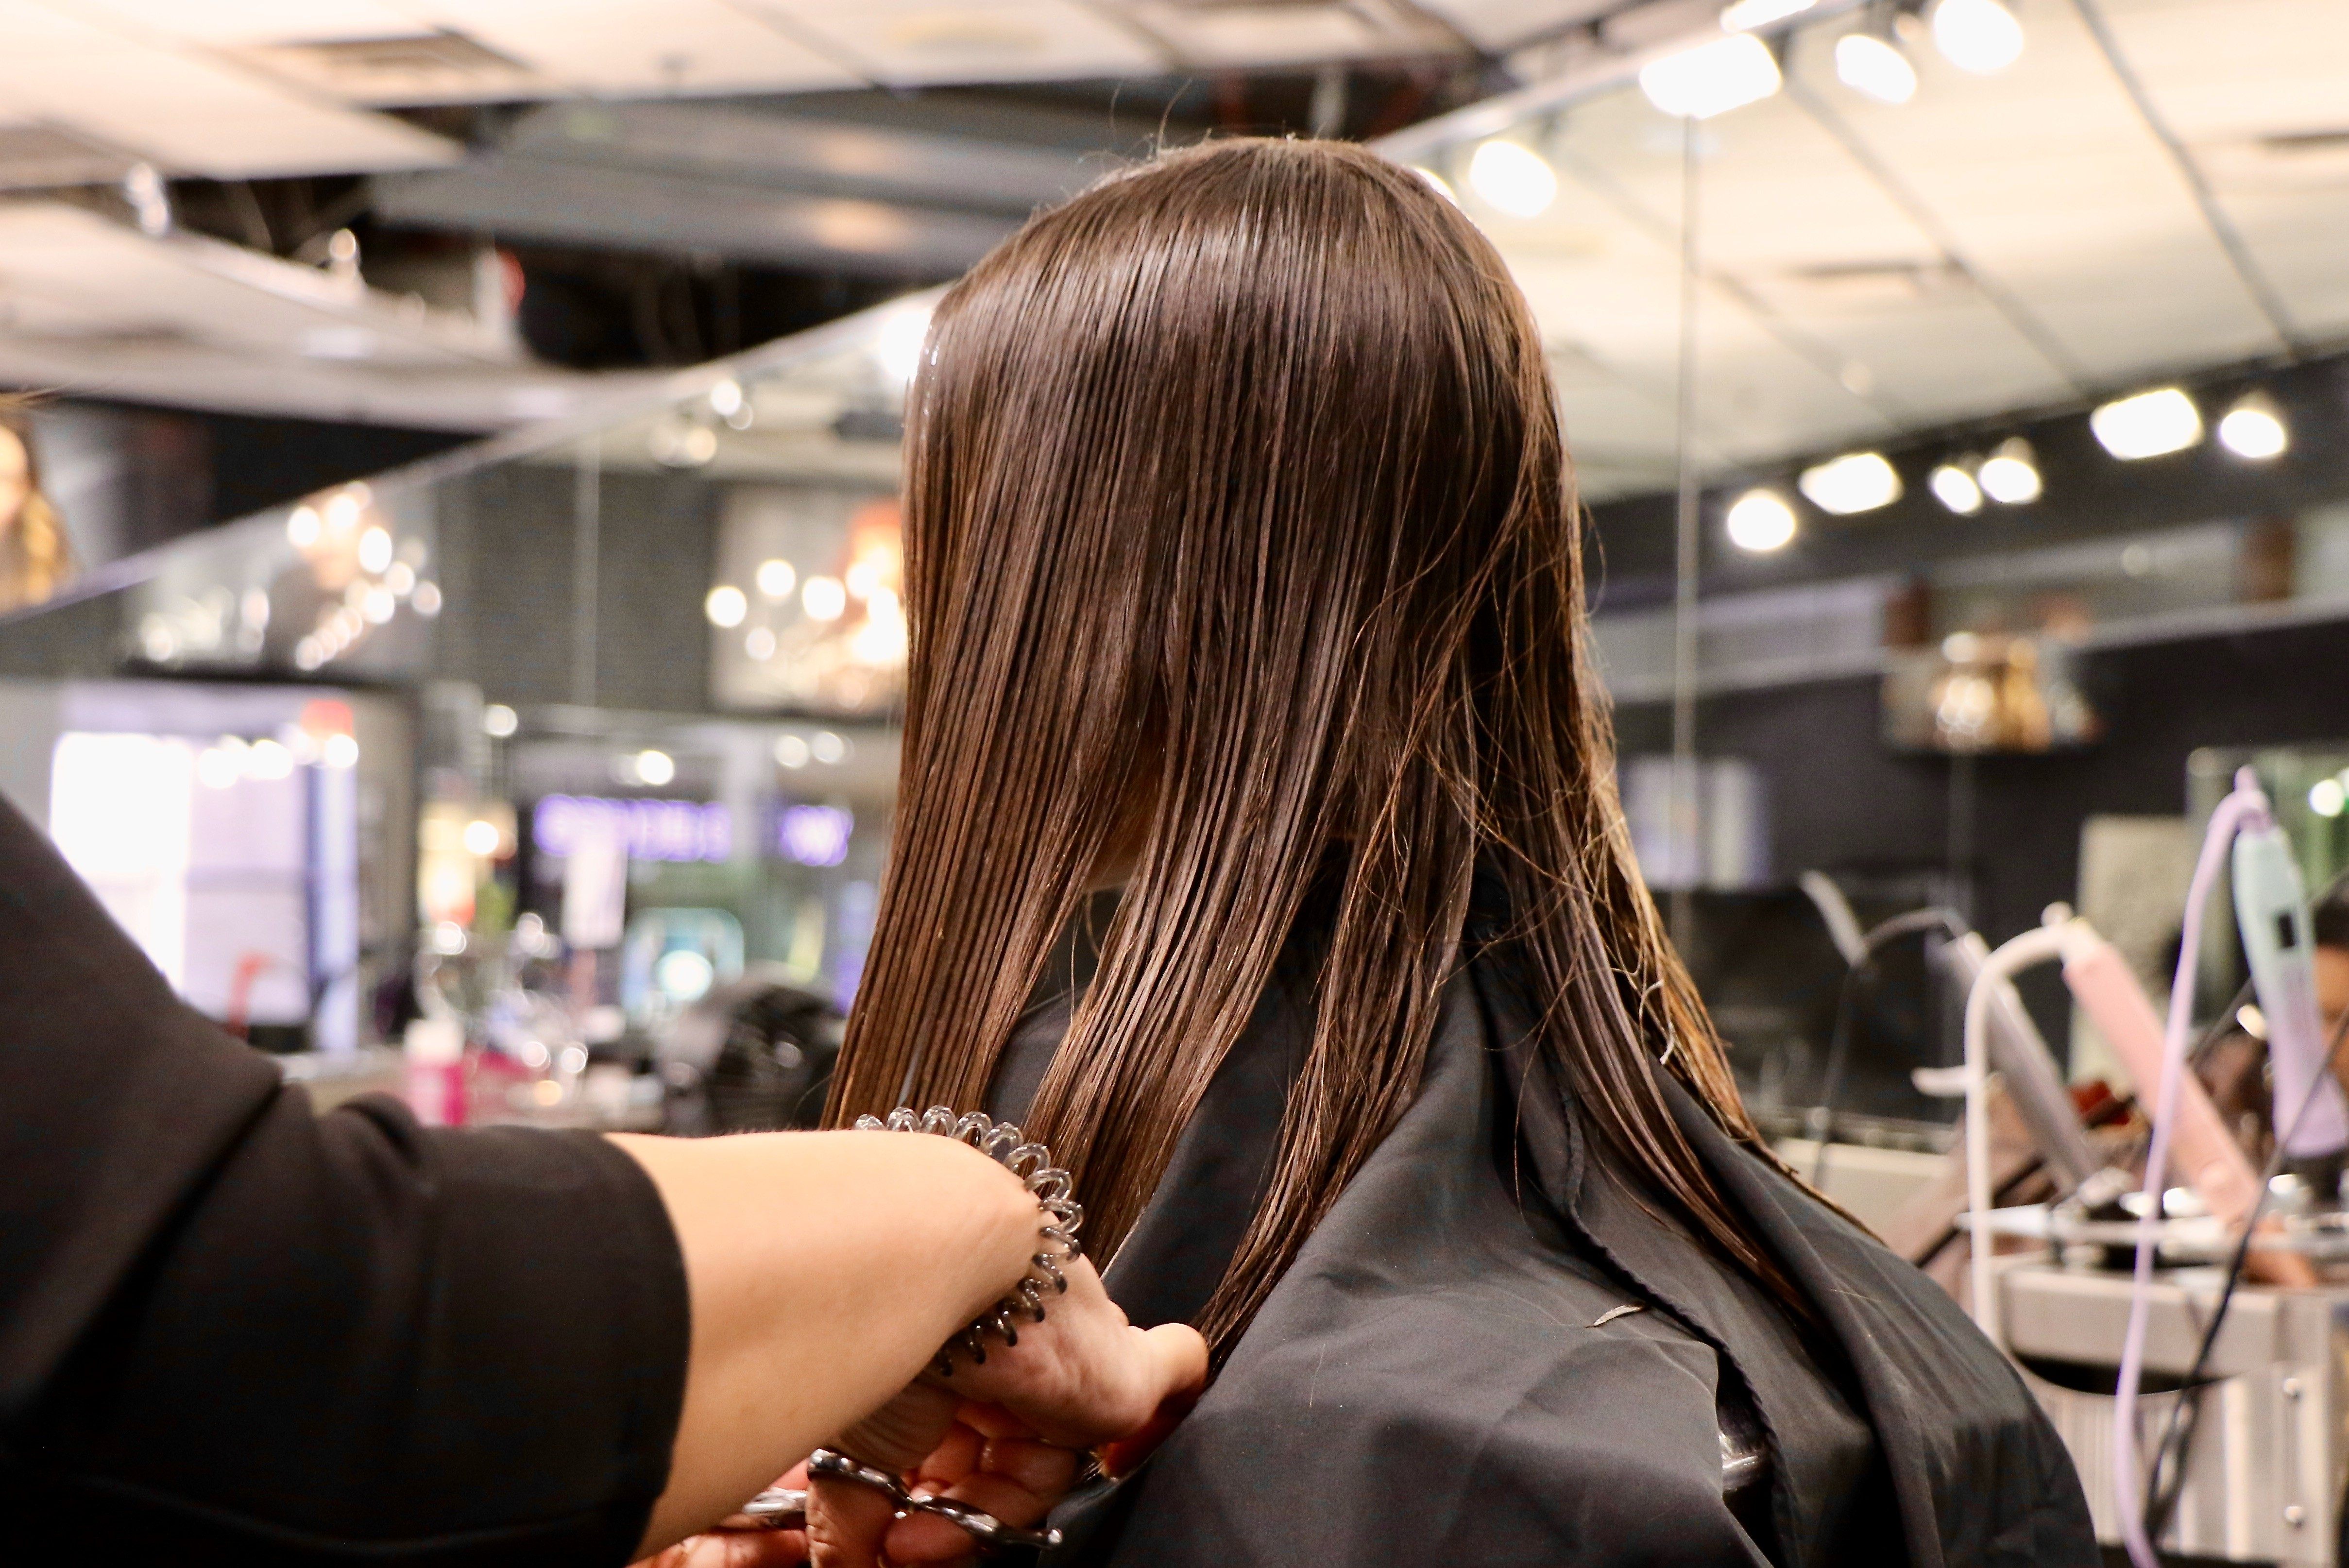 Cutting It Close: Facing Loss of Income, San Antonio Salon Workers